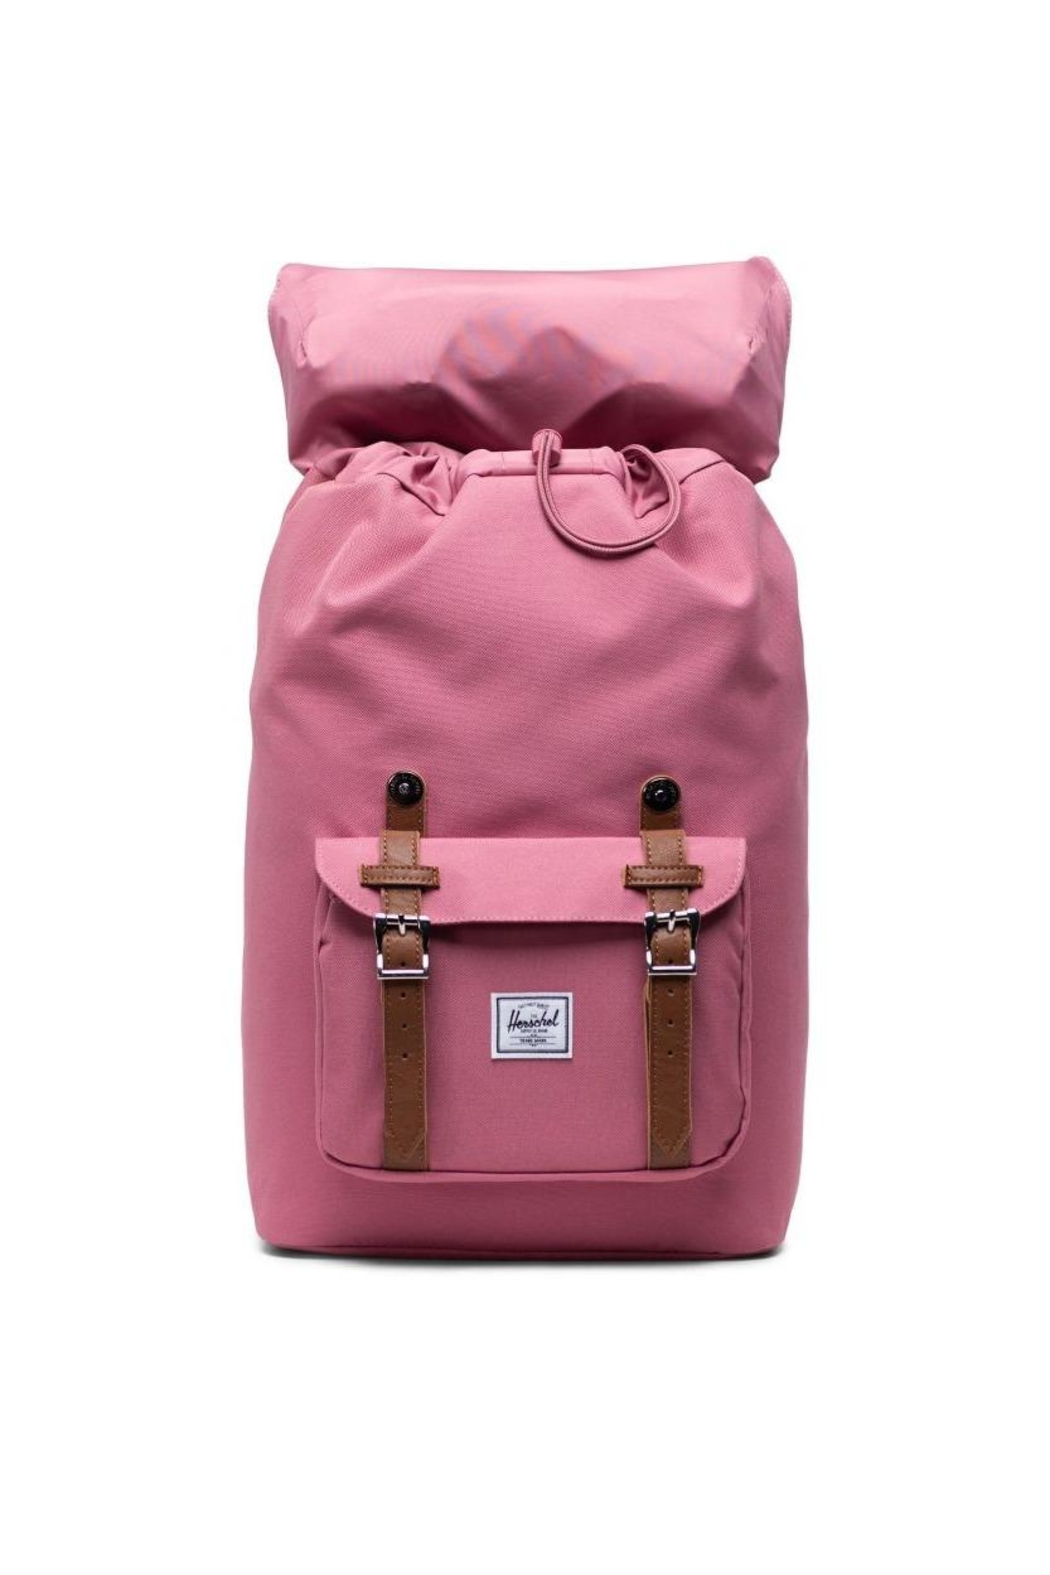 Herschel Supply Co. Mid-Sized Pink Backpack - Front Full Image